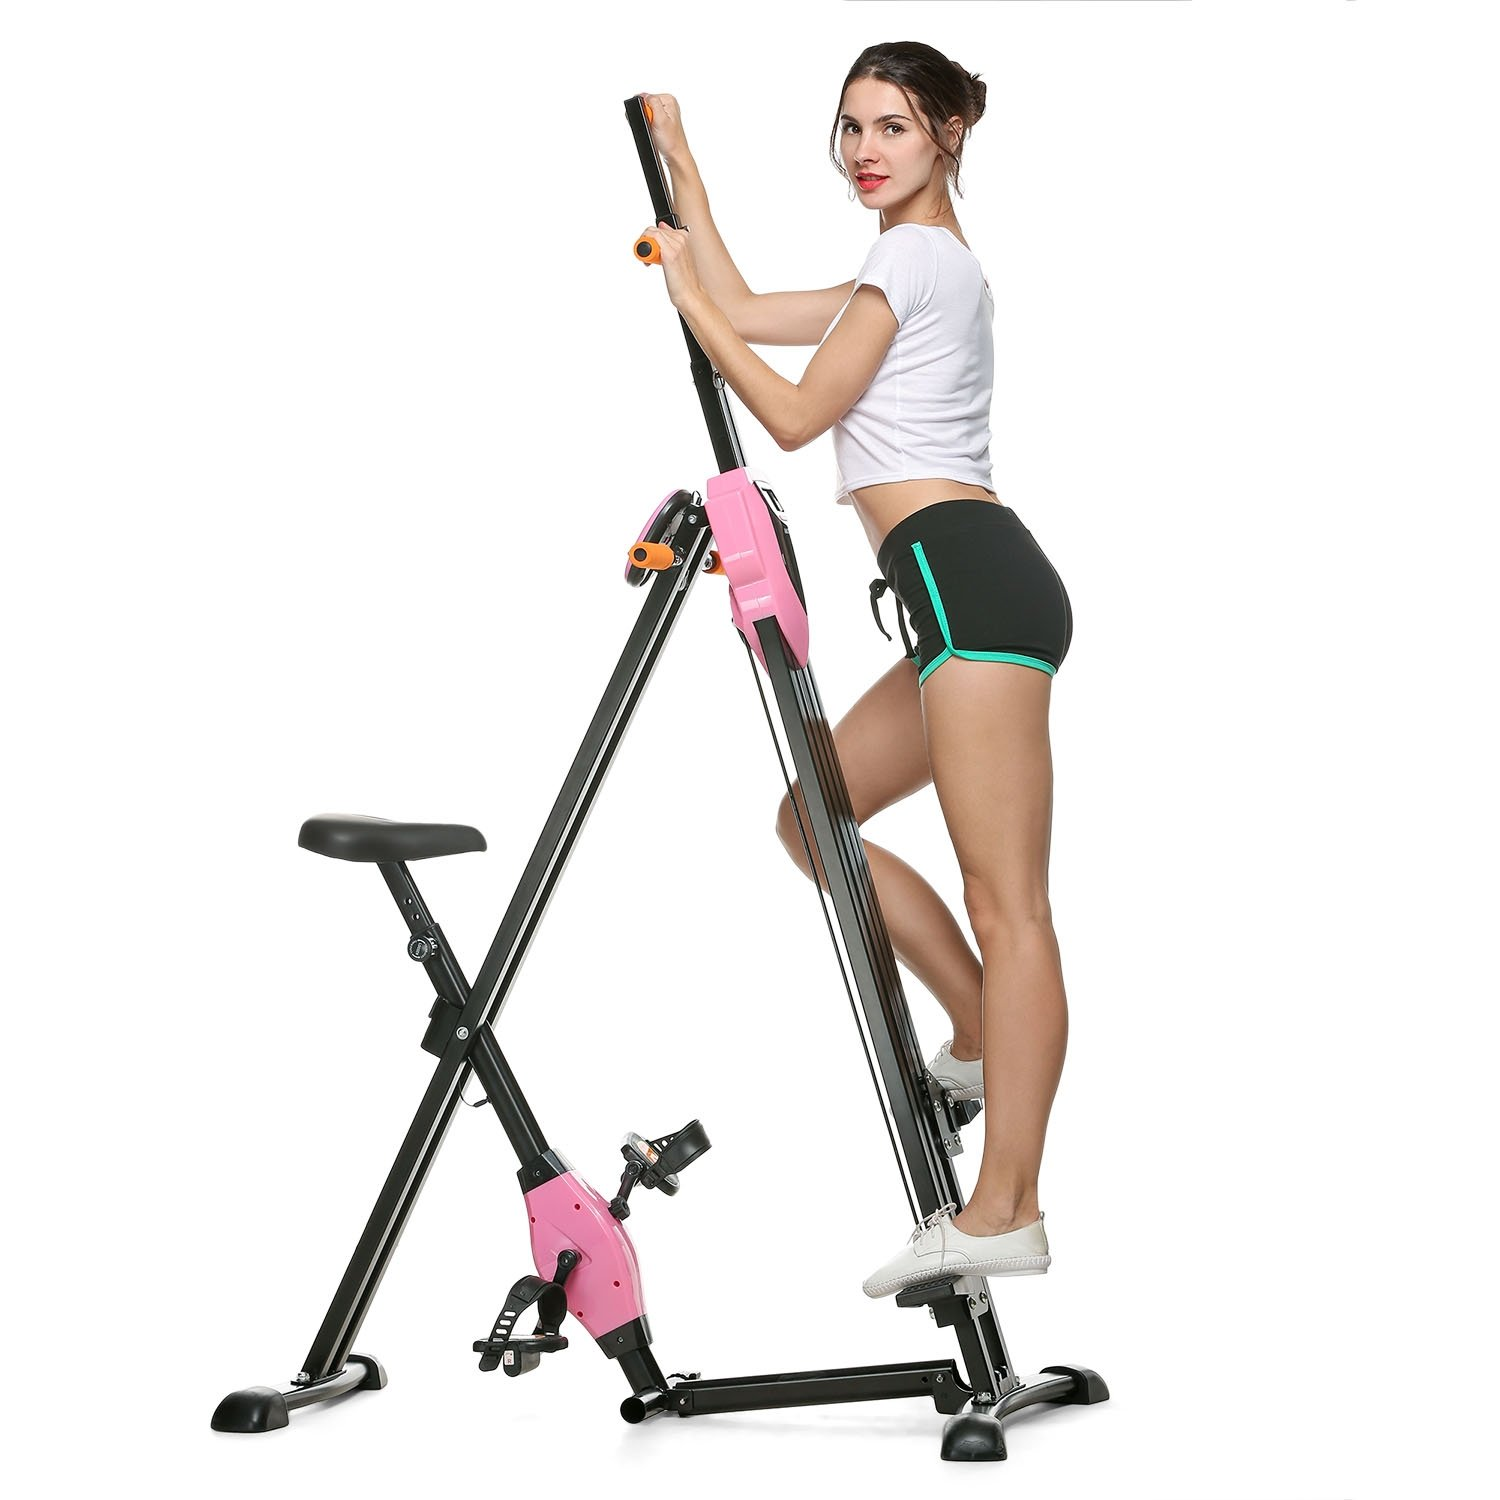 Asatr Vertical Climber Folding Gym Exercise Fitness Machine Stepper Exercise Bike for Home Body Trainer by Asatr